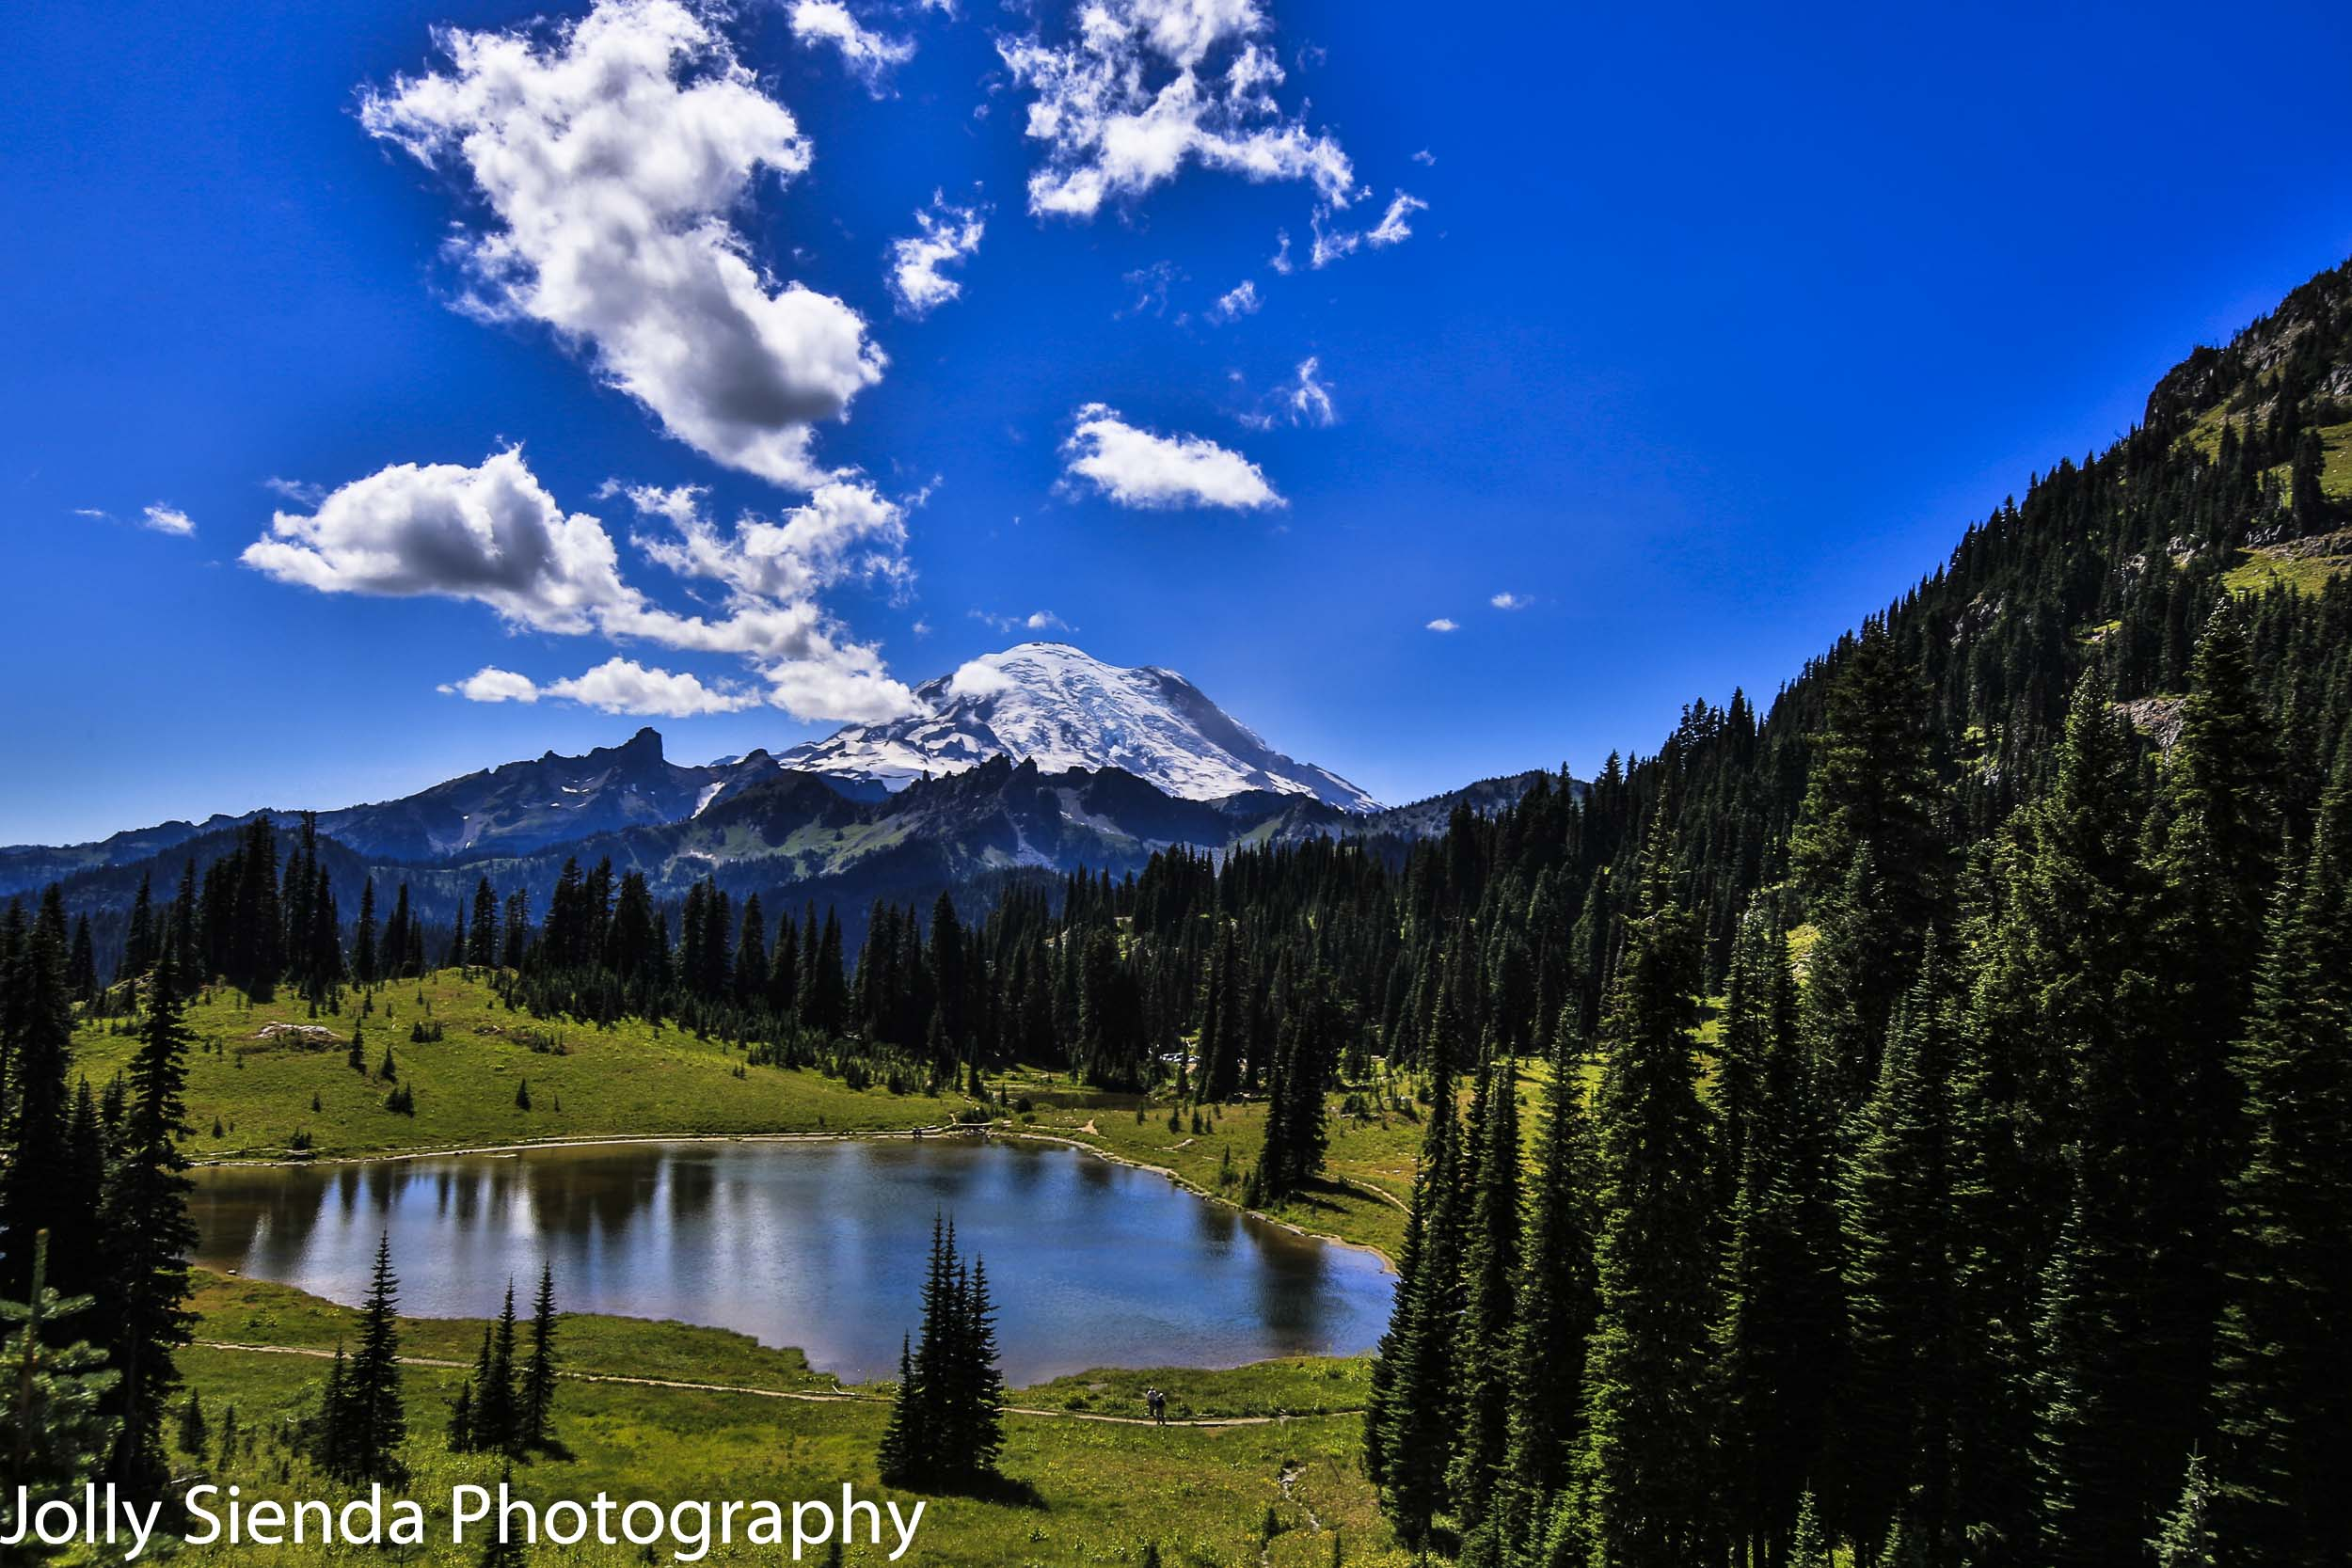 Mount Rainier, clouds, evergreen trees, lake at summertime